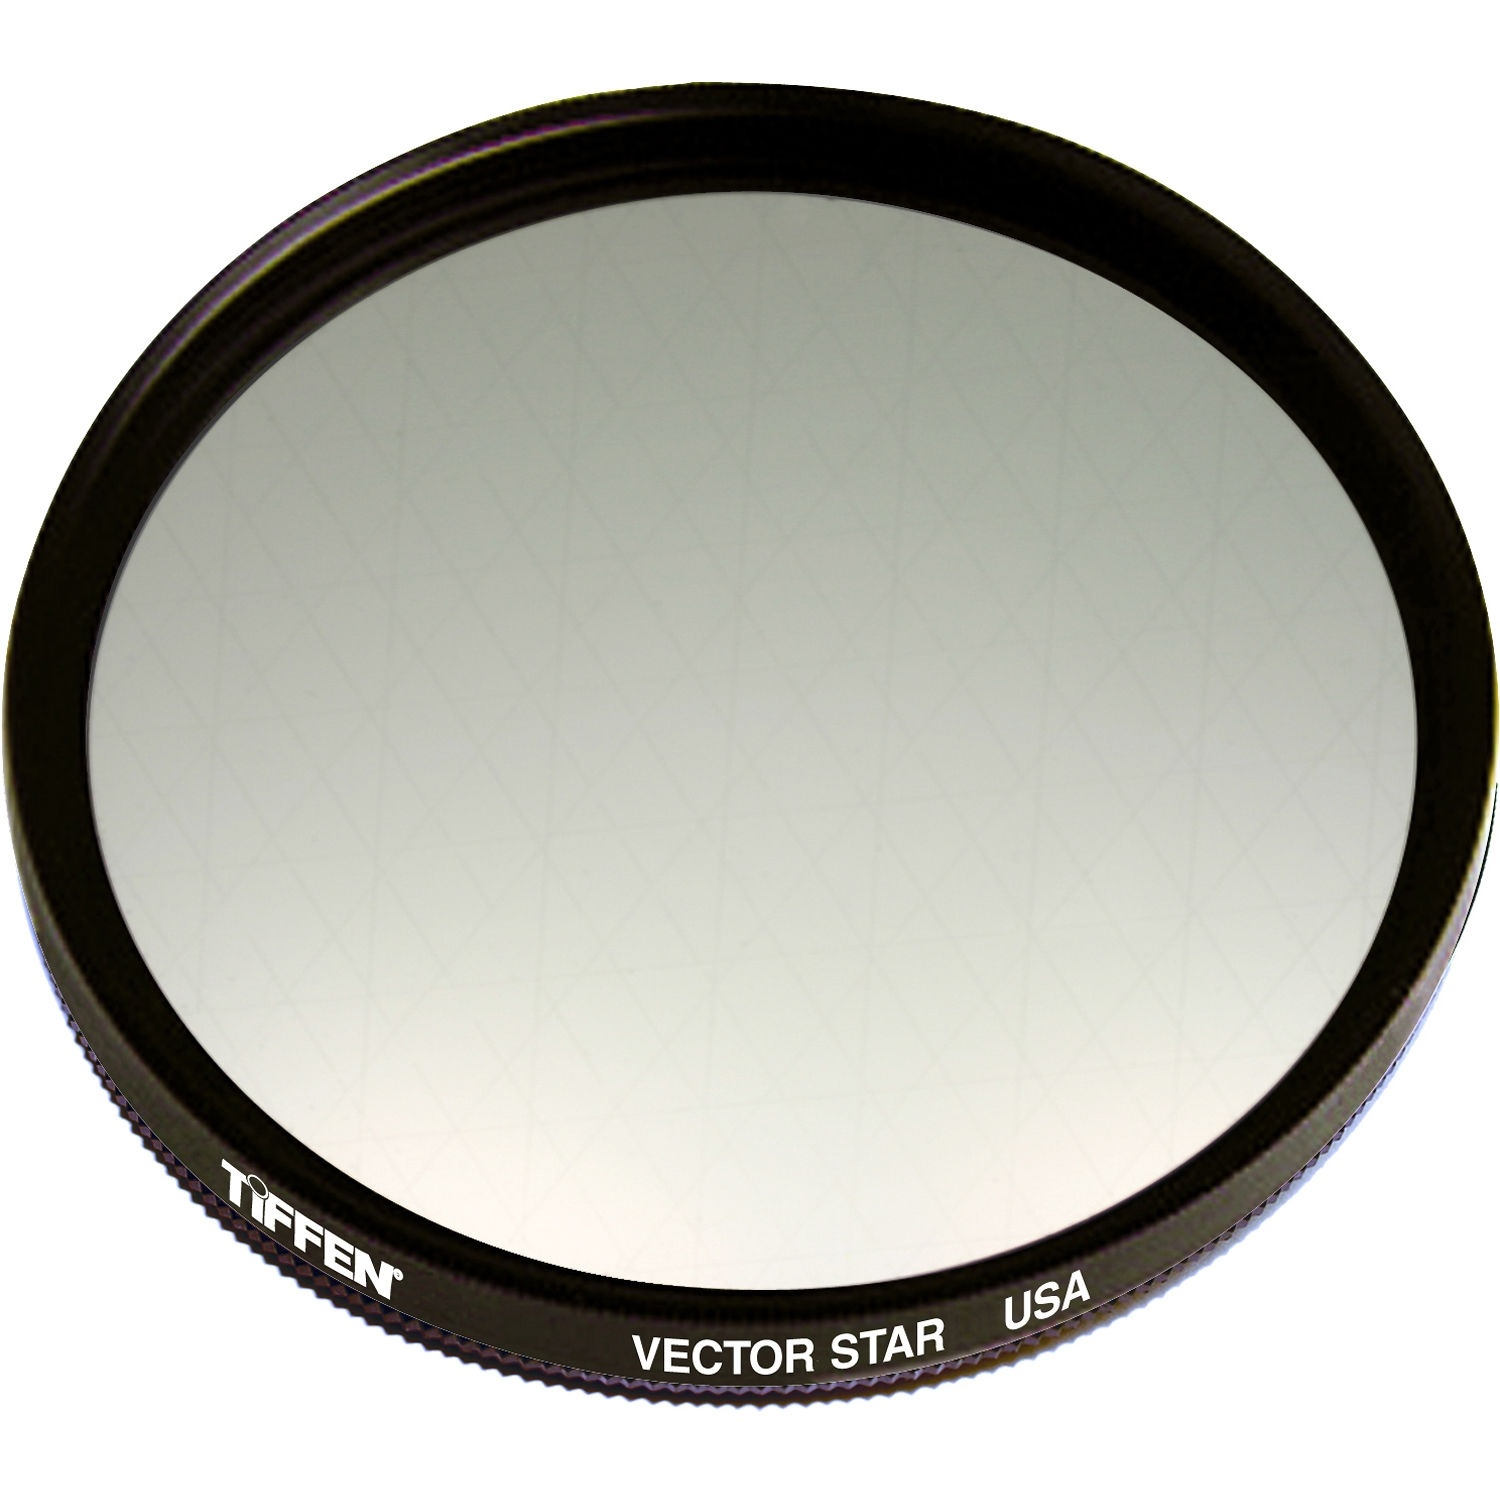 Tiffen 62mm Vector Star Effect Filter